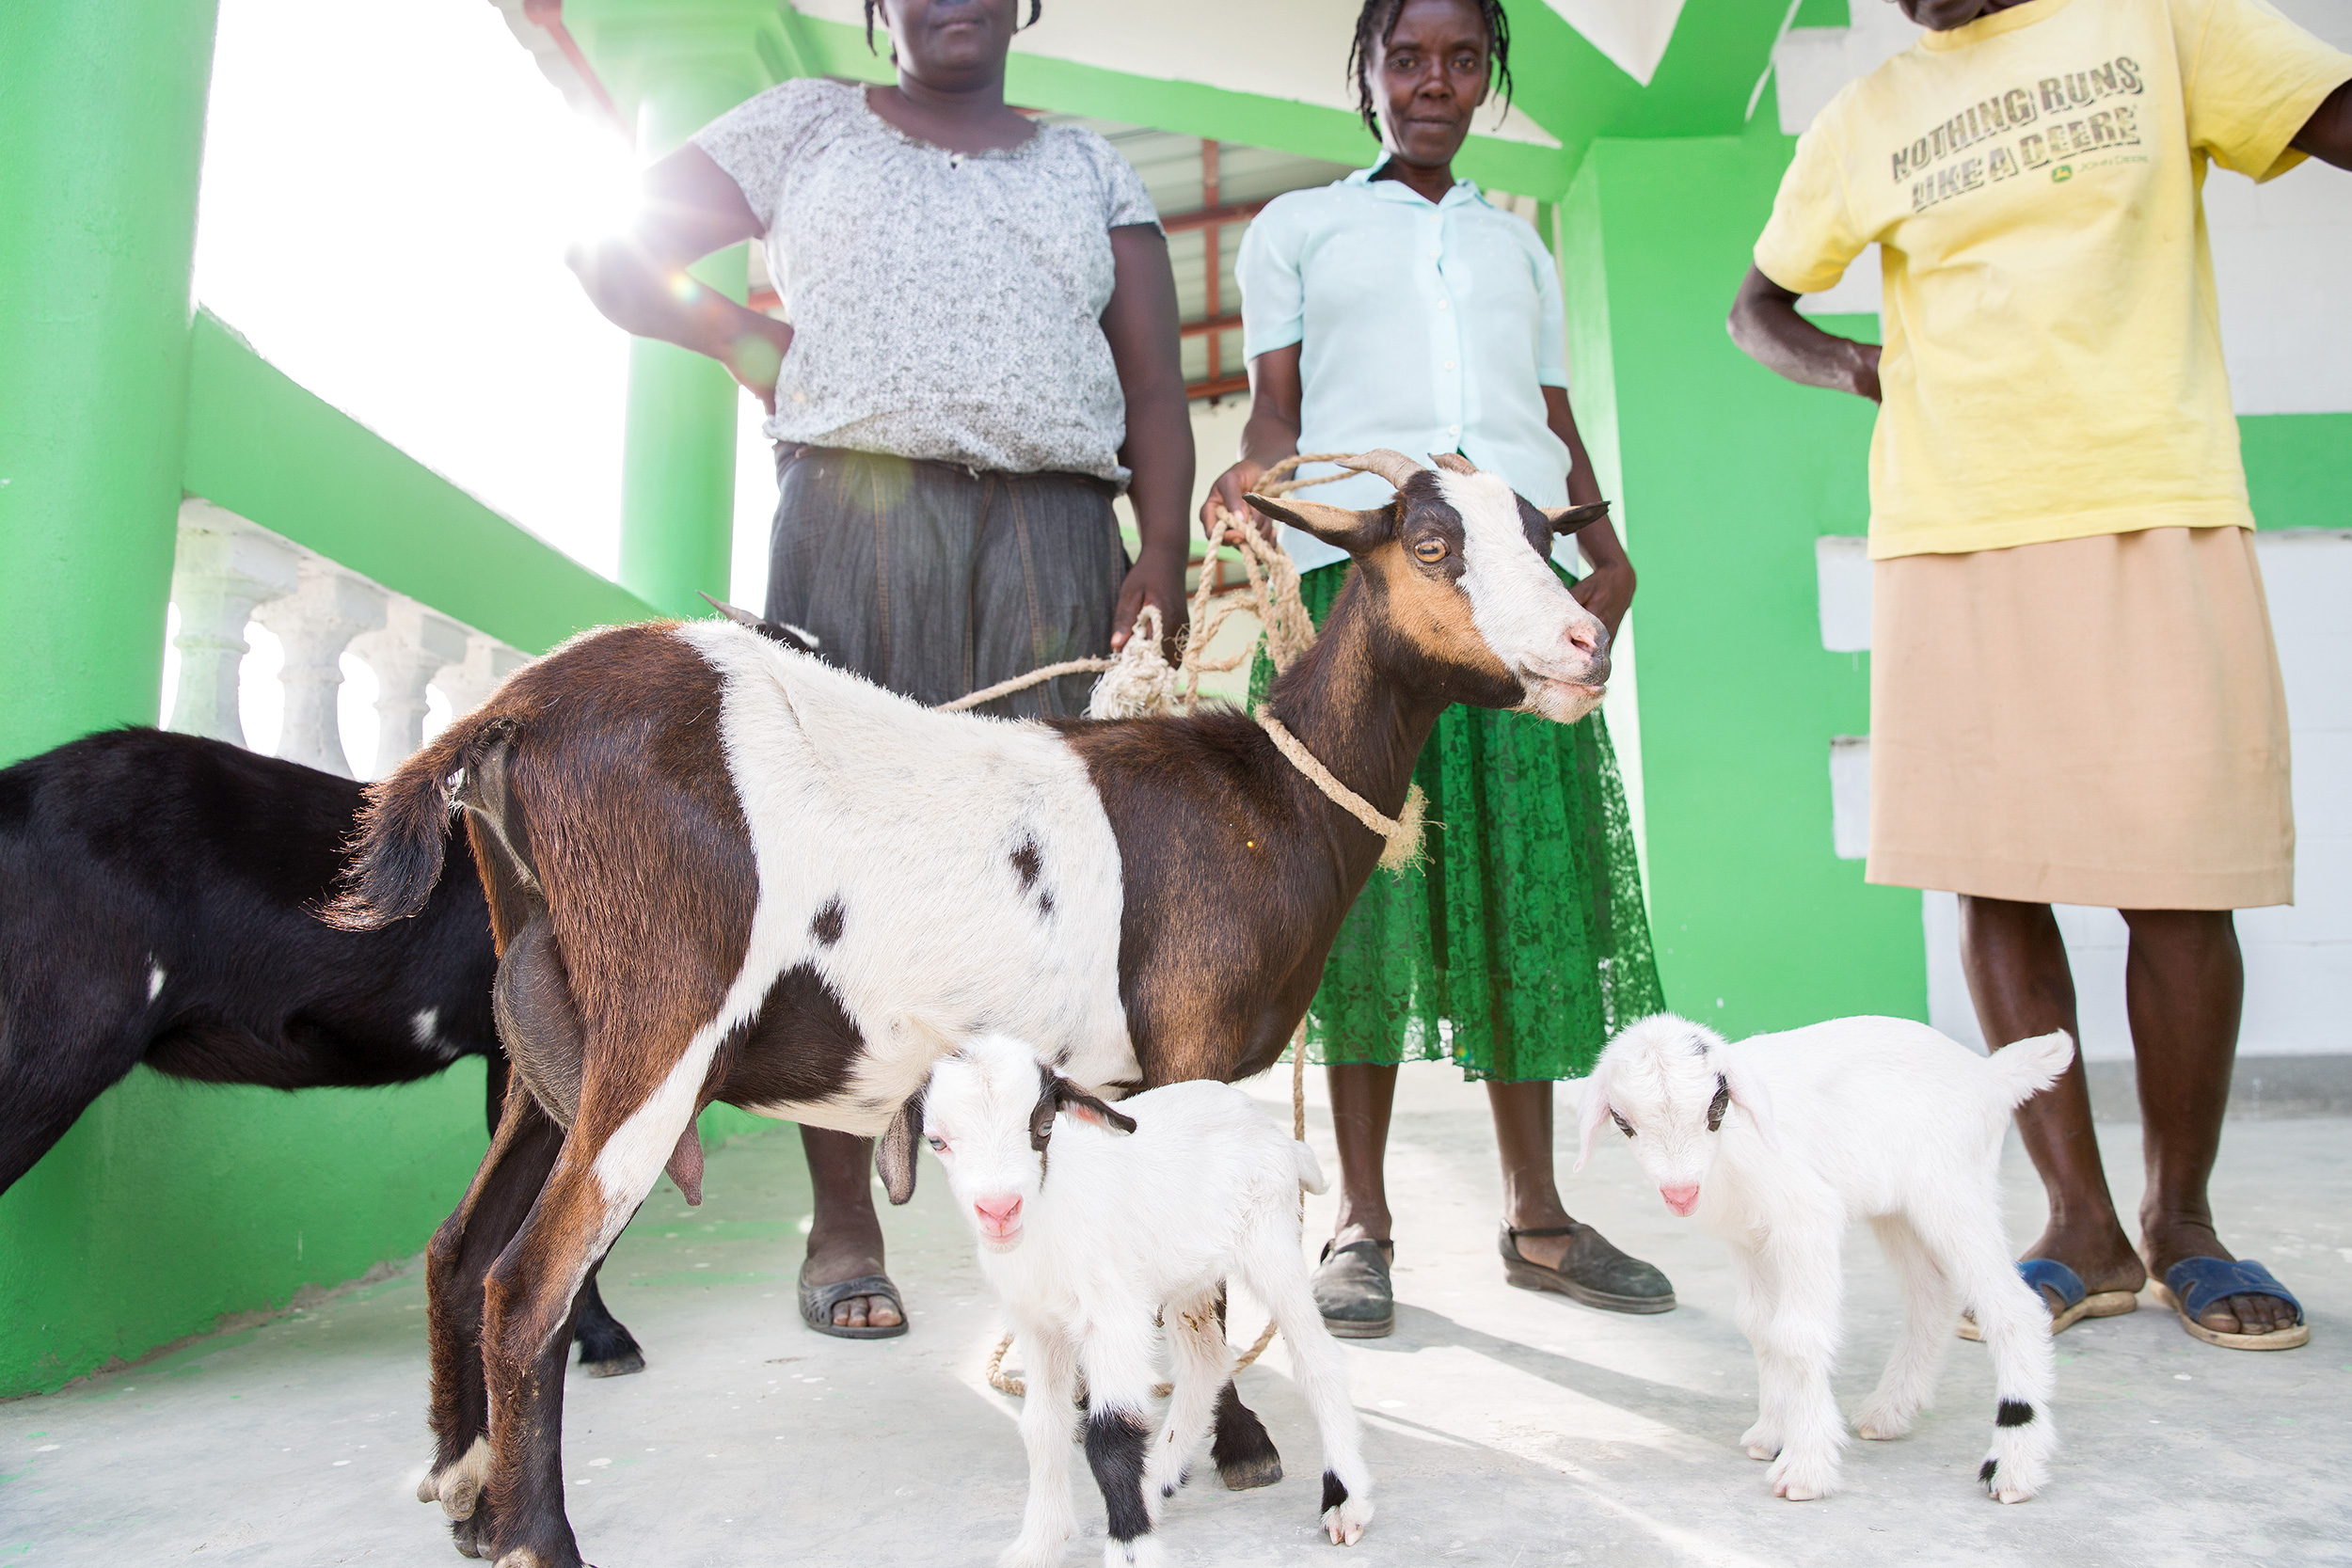 TRAVEL_NGO_FREETHECHILDREN_VILLAGE_women_goats_babygoat_3316_WB